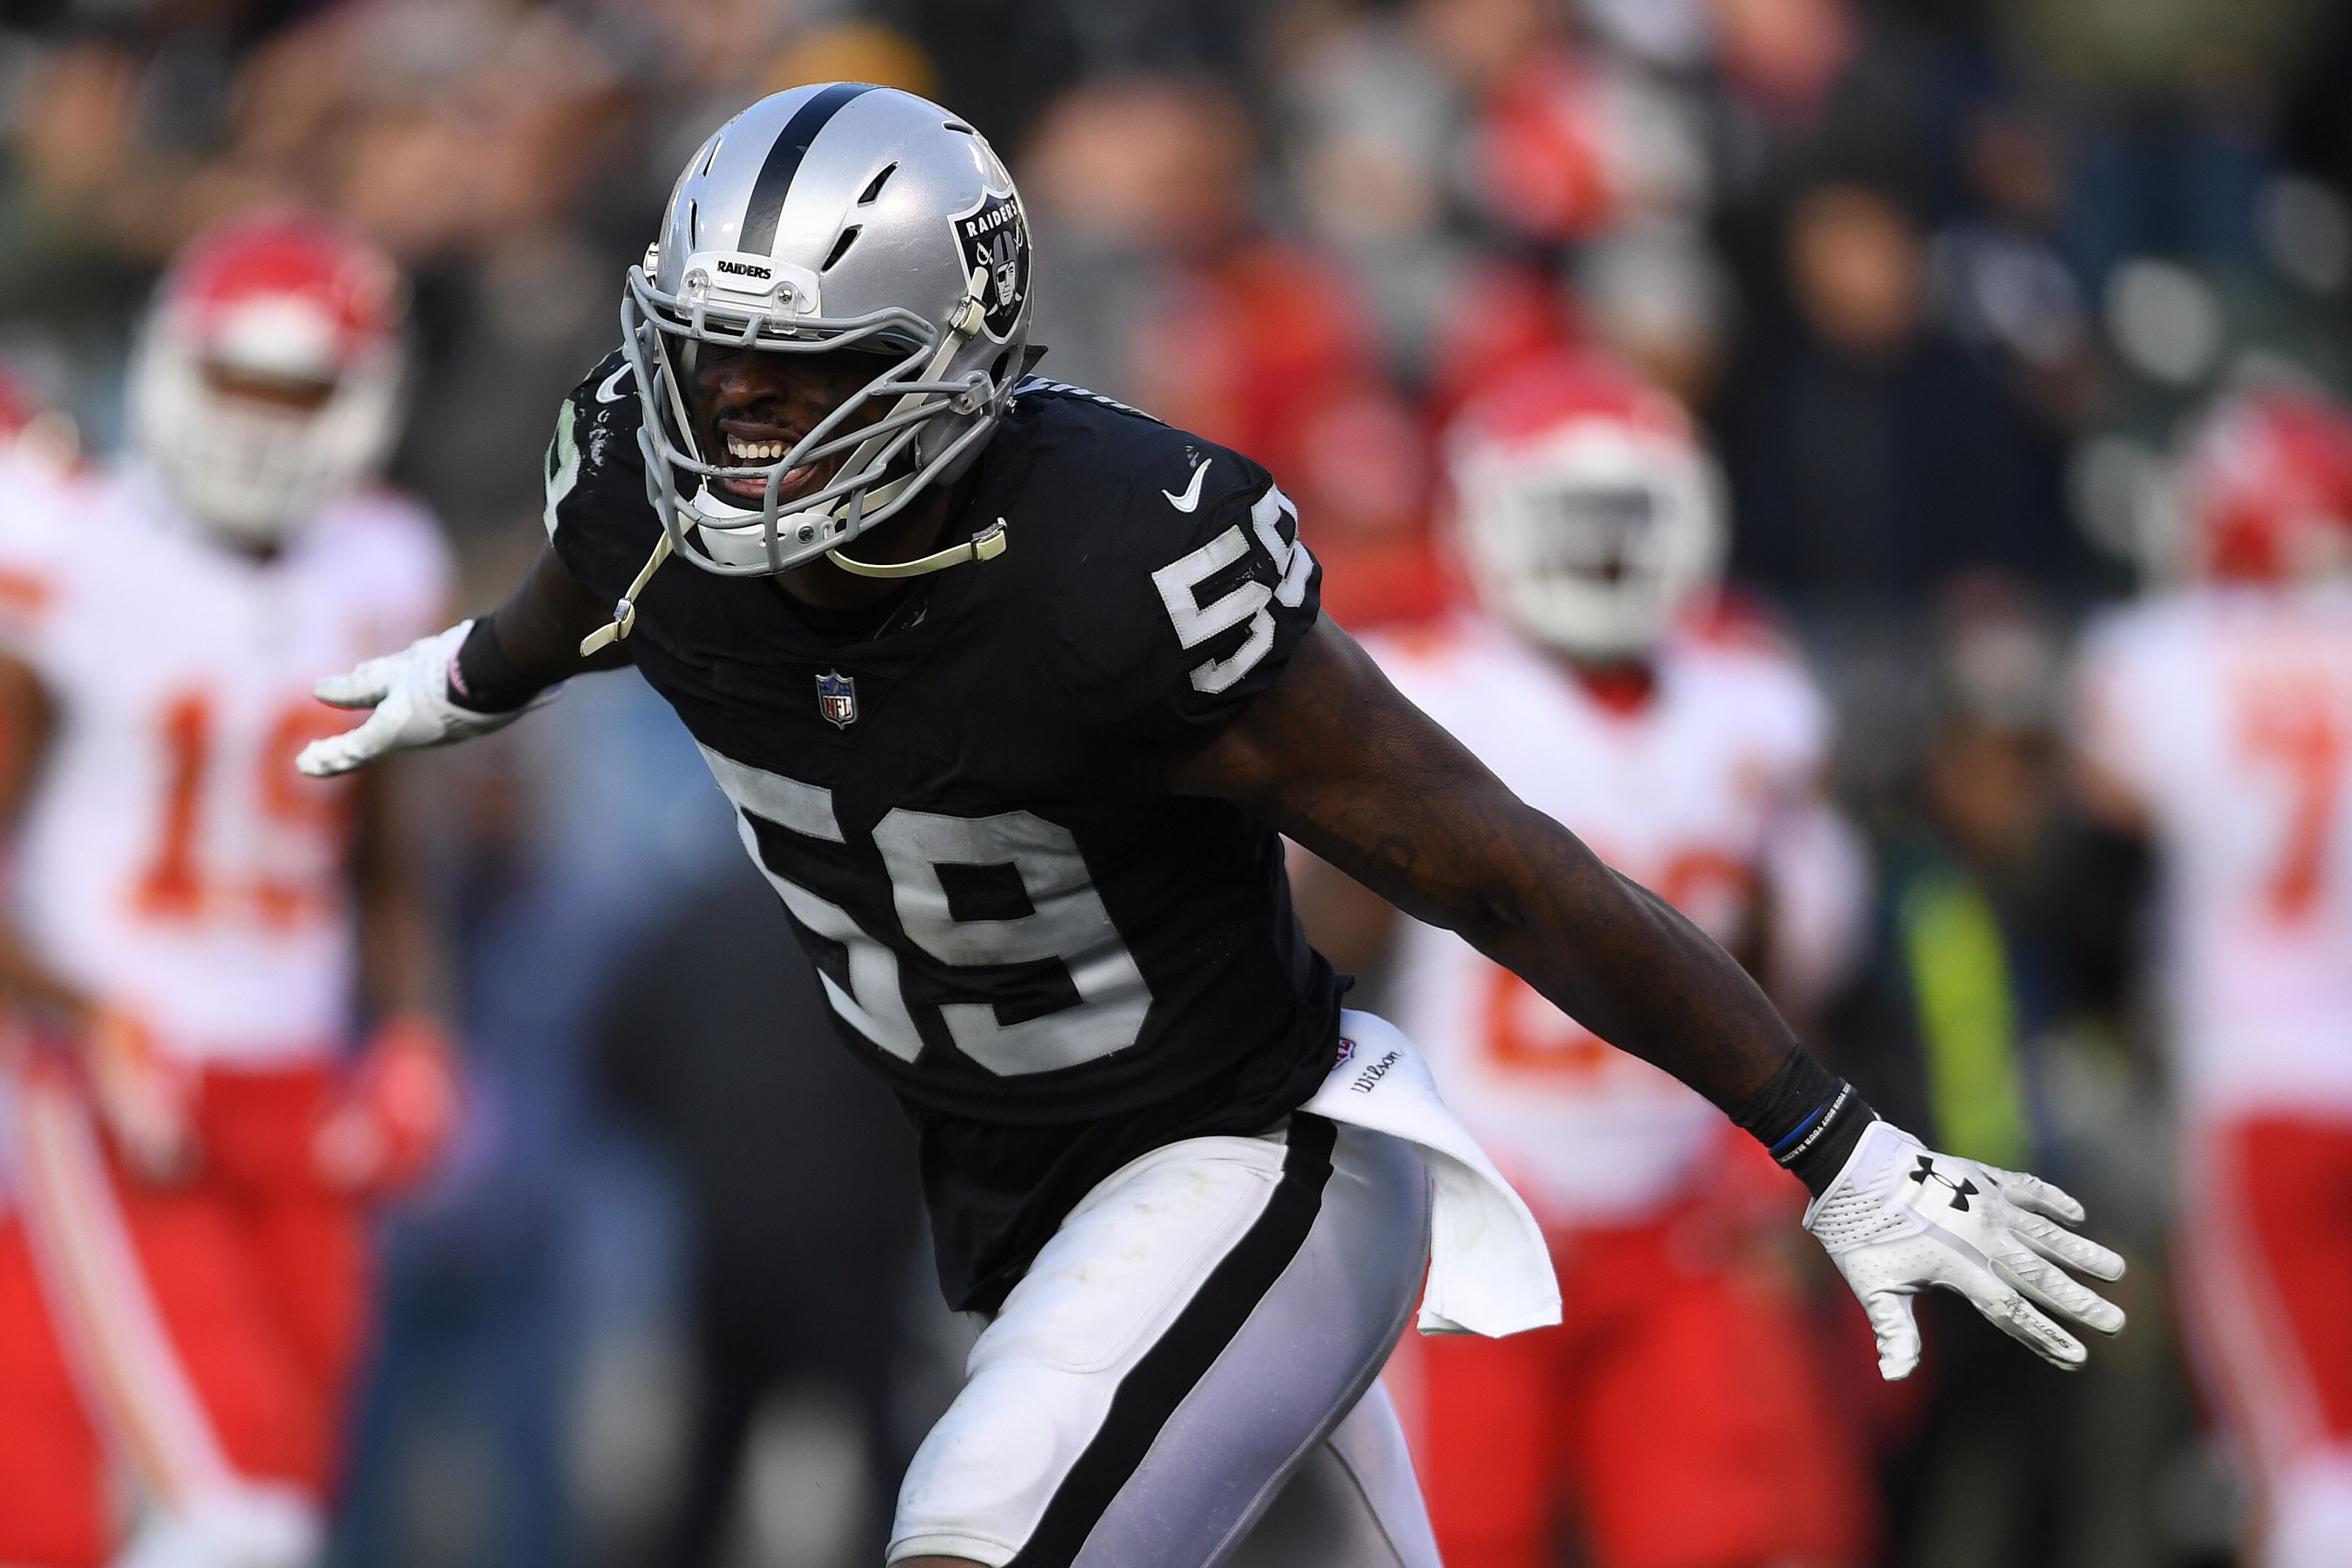 OAKLAND, CA - DECEMBER 02: Tahir Whitehead #59 of the Oakland Raiders celebrates after a play against the Kansas City Chiefs during their NFL game at Oakland-Alameda County Coliseum on December 2, 2018 in Oakland, California. (Photo by Thearon W. Henderson/Getty Images)